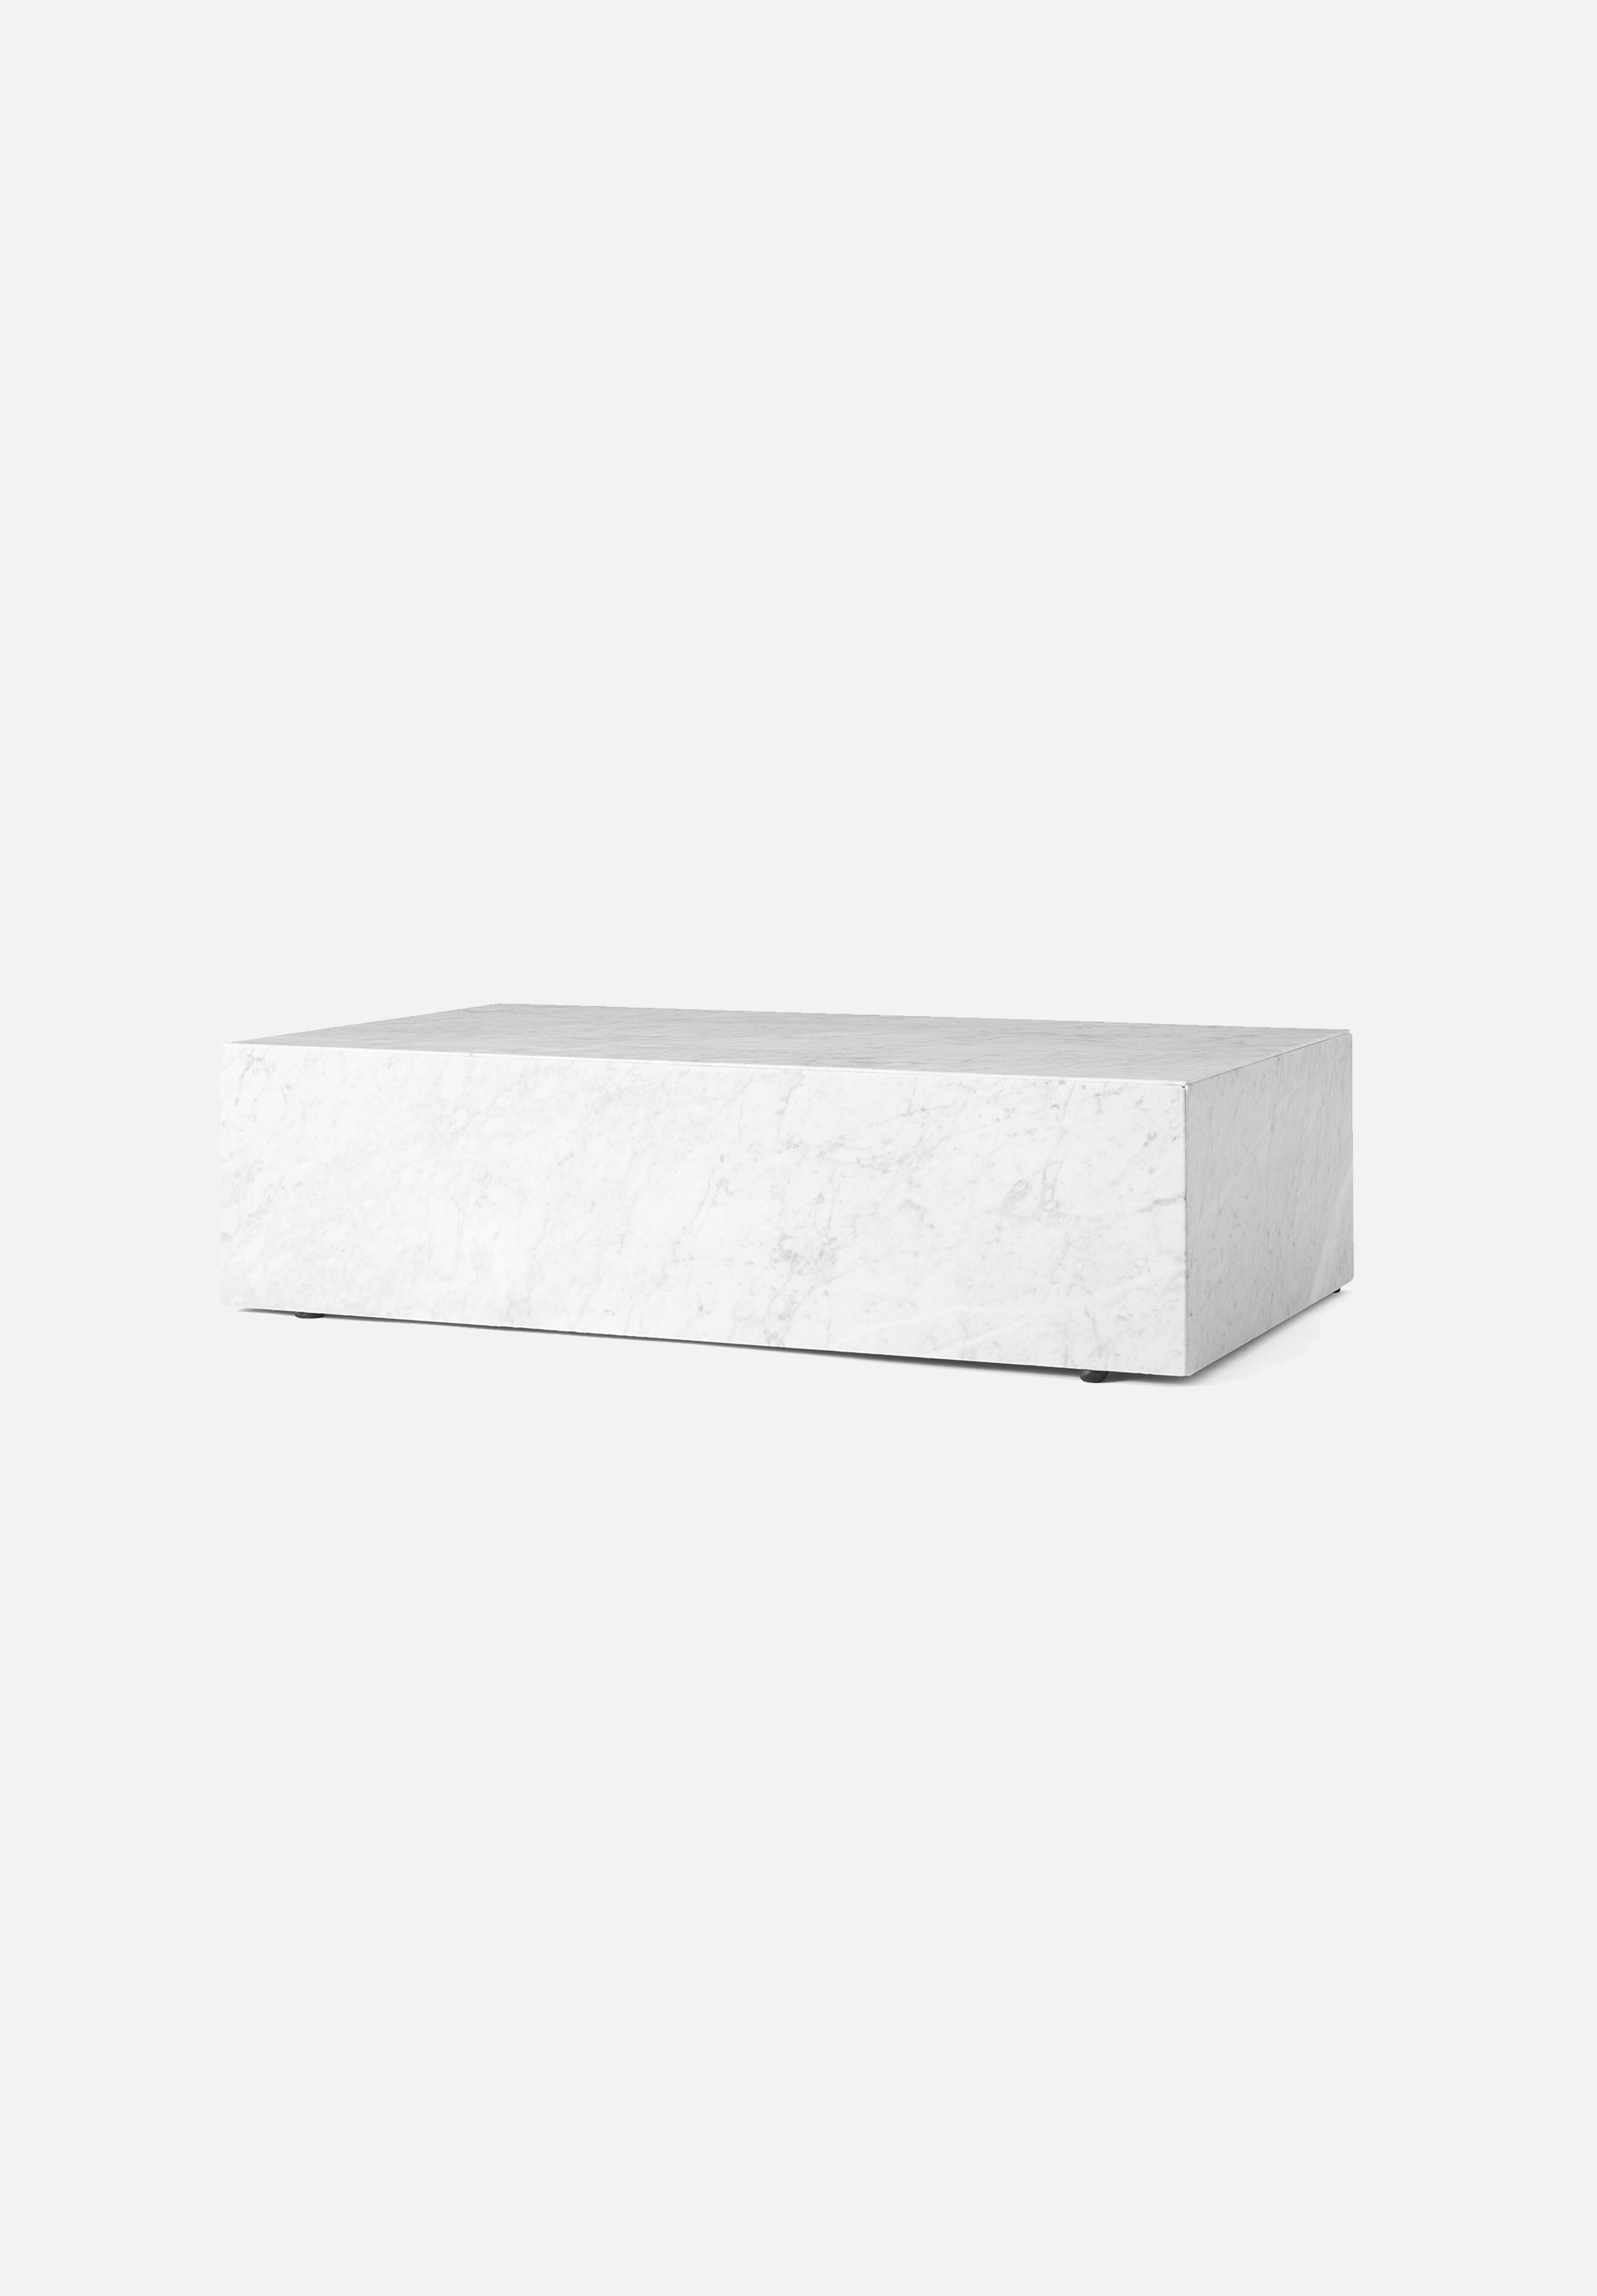 Low Plinth-Norm Architects-Menu-White Carrara-Average